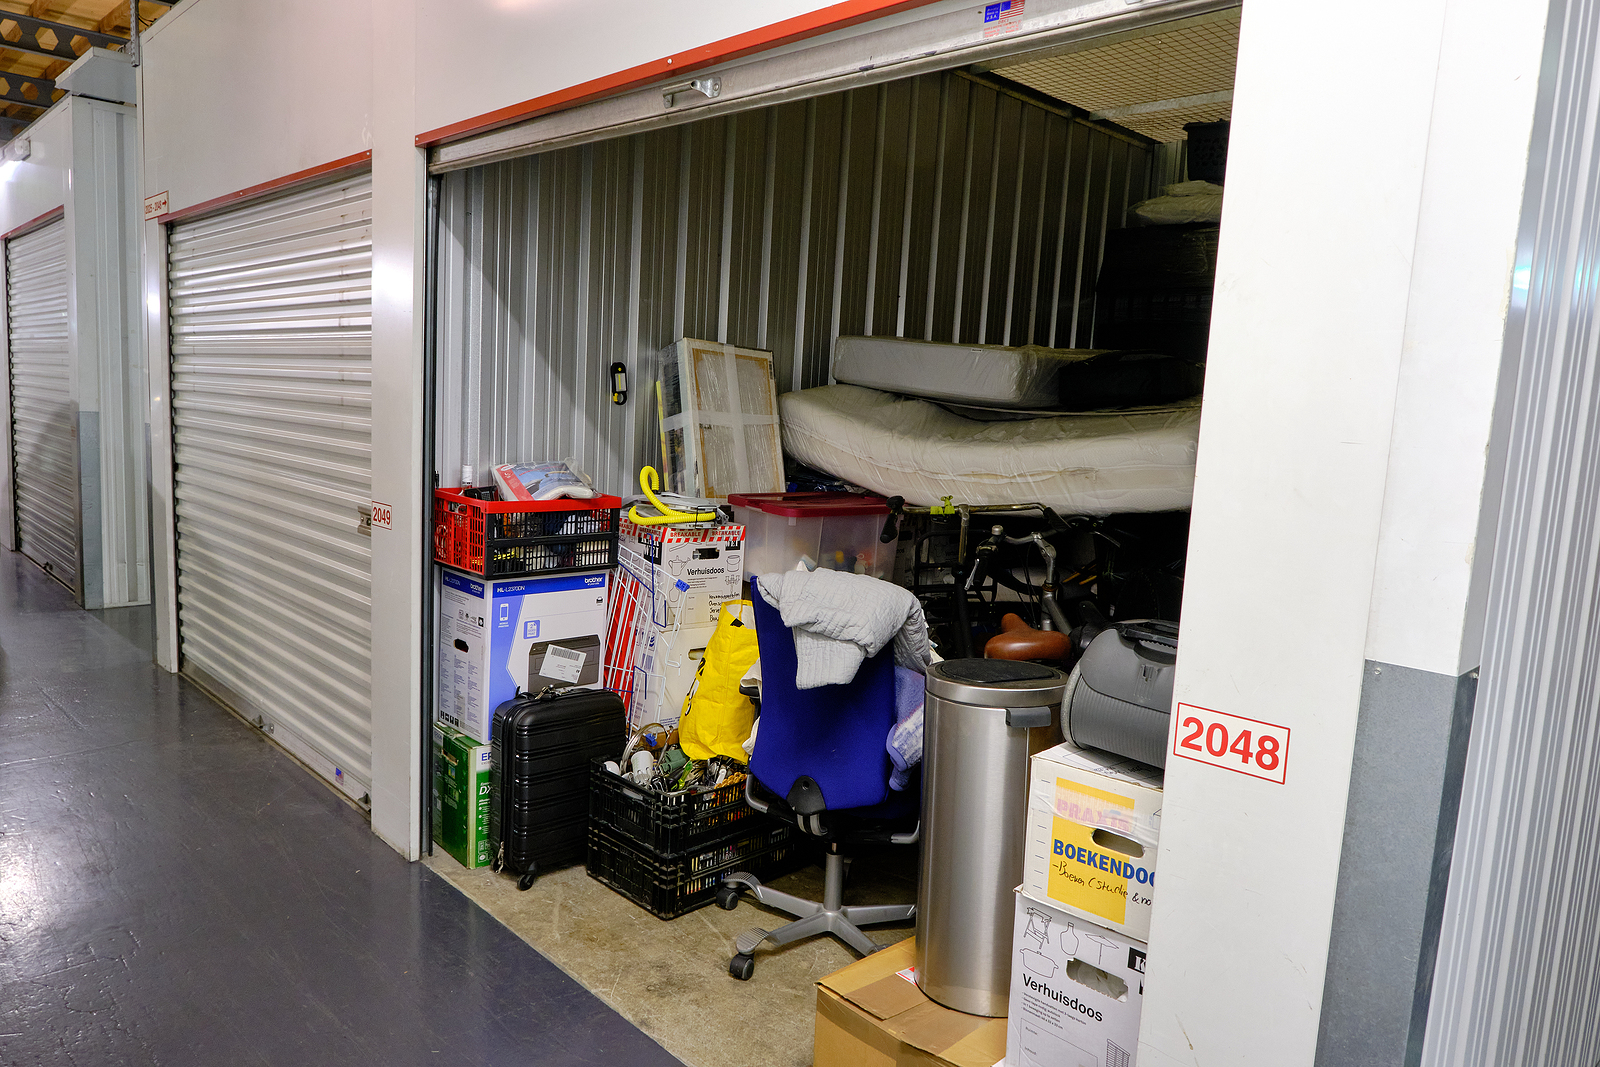 Newcastle storage units with household goods inside